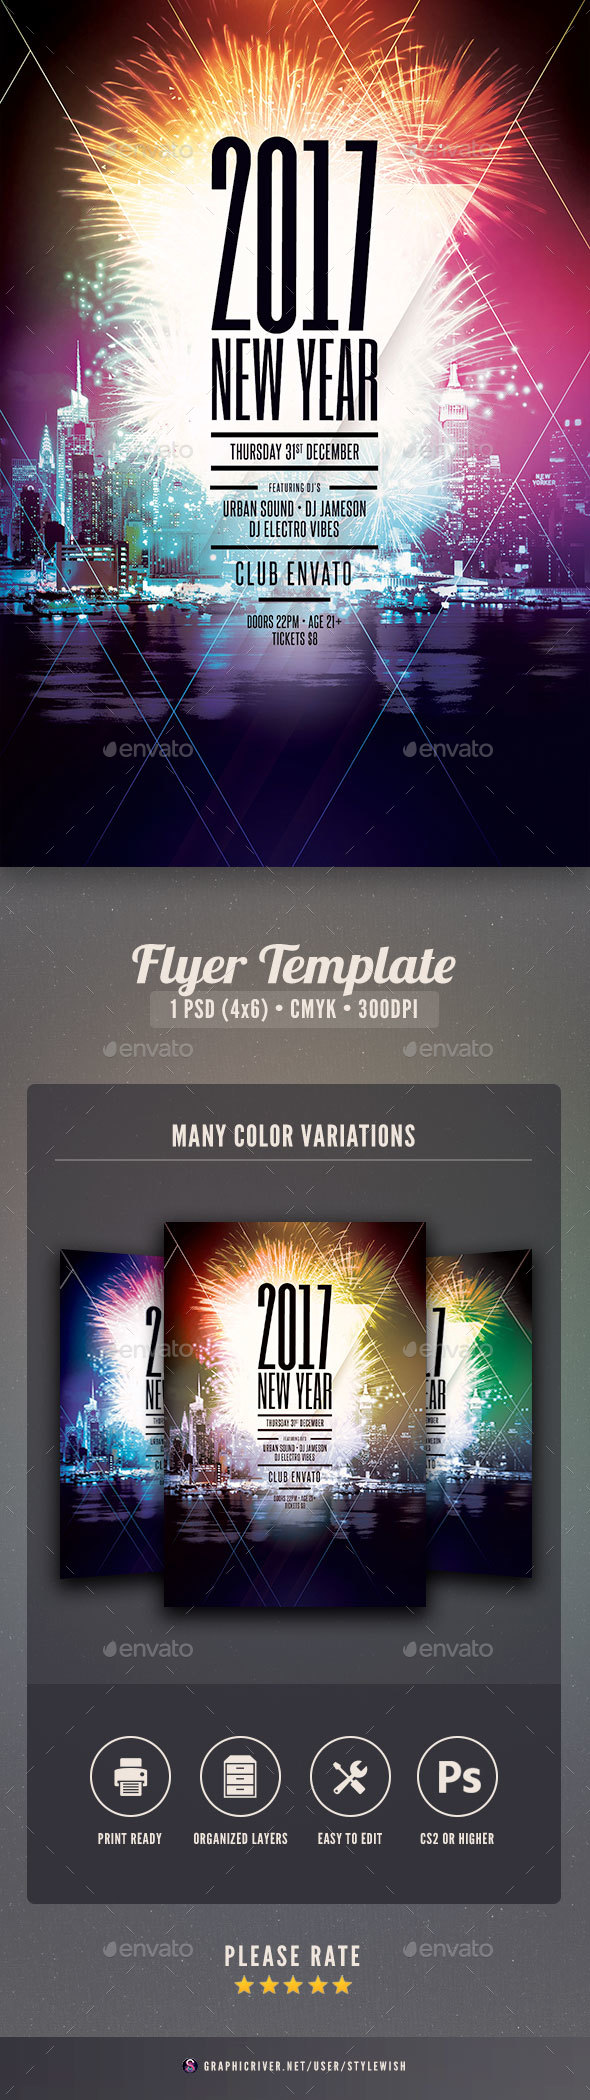 New Year Flyer Template  Flyer Template Template And Party